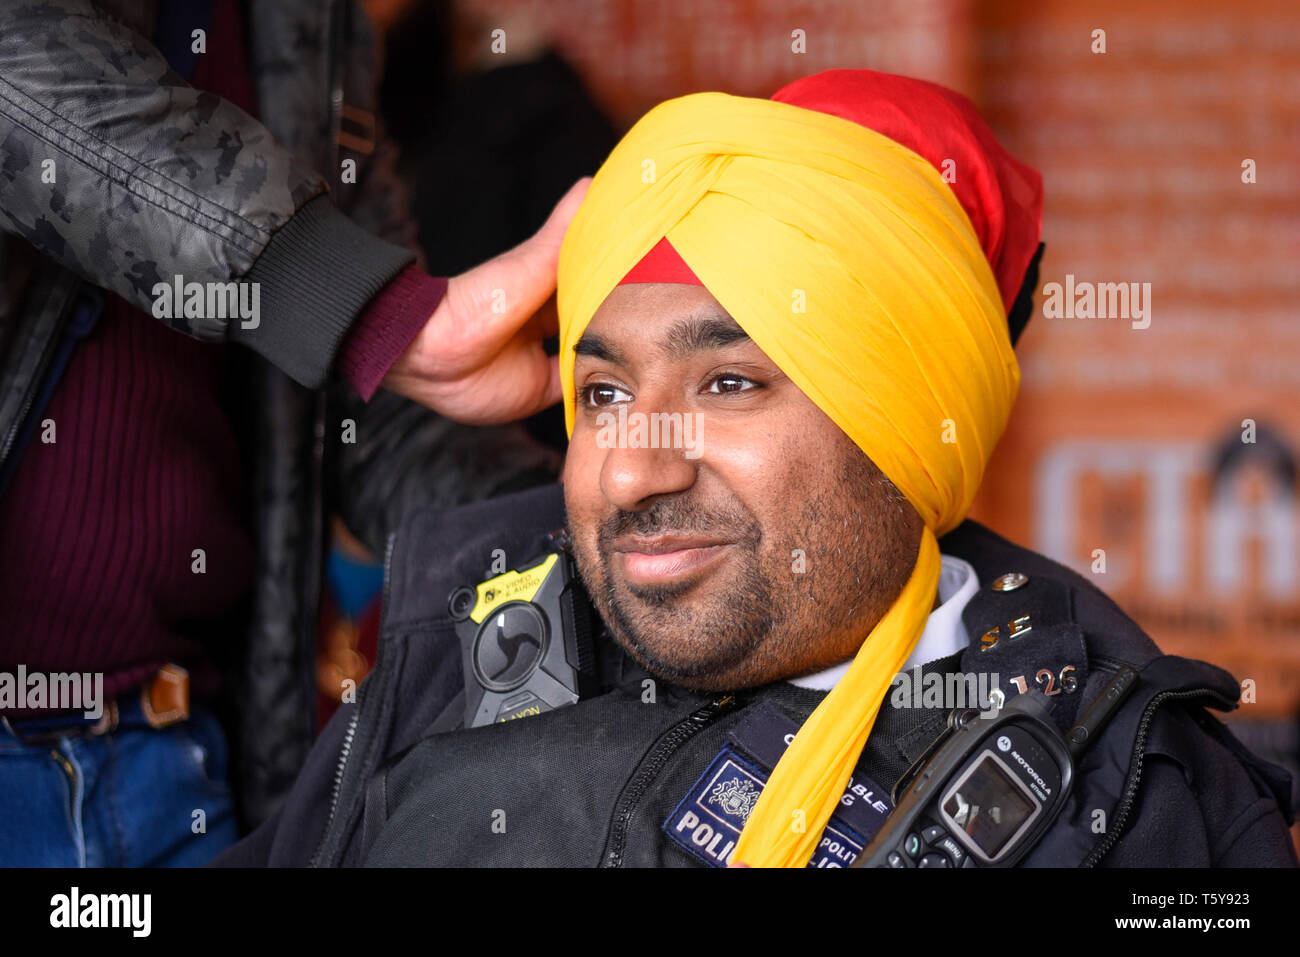 London, UK.  27 April 2019.  A police officer has a turban tied during the festival of Vaisakhi in Trafalgar Square, hosted by the Mayor of London.  For Sikhs and Punjabis, the festival celebrates the spring harvest and commemorates the founding of the Khalsa community over 300 years ago.  Credit: Stephen Chung / Alamy Live News - Stock Image